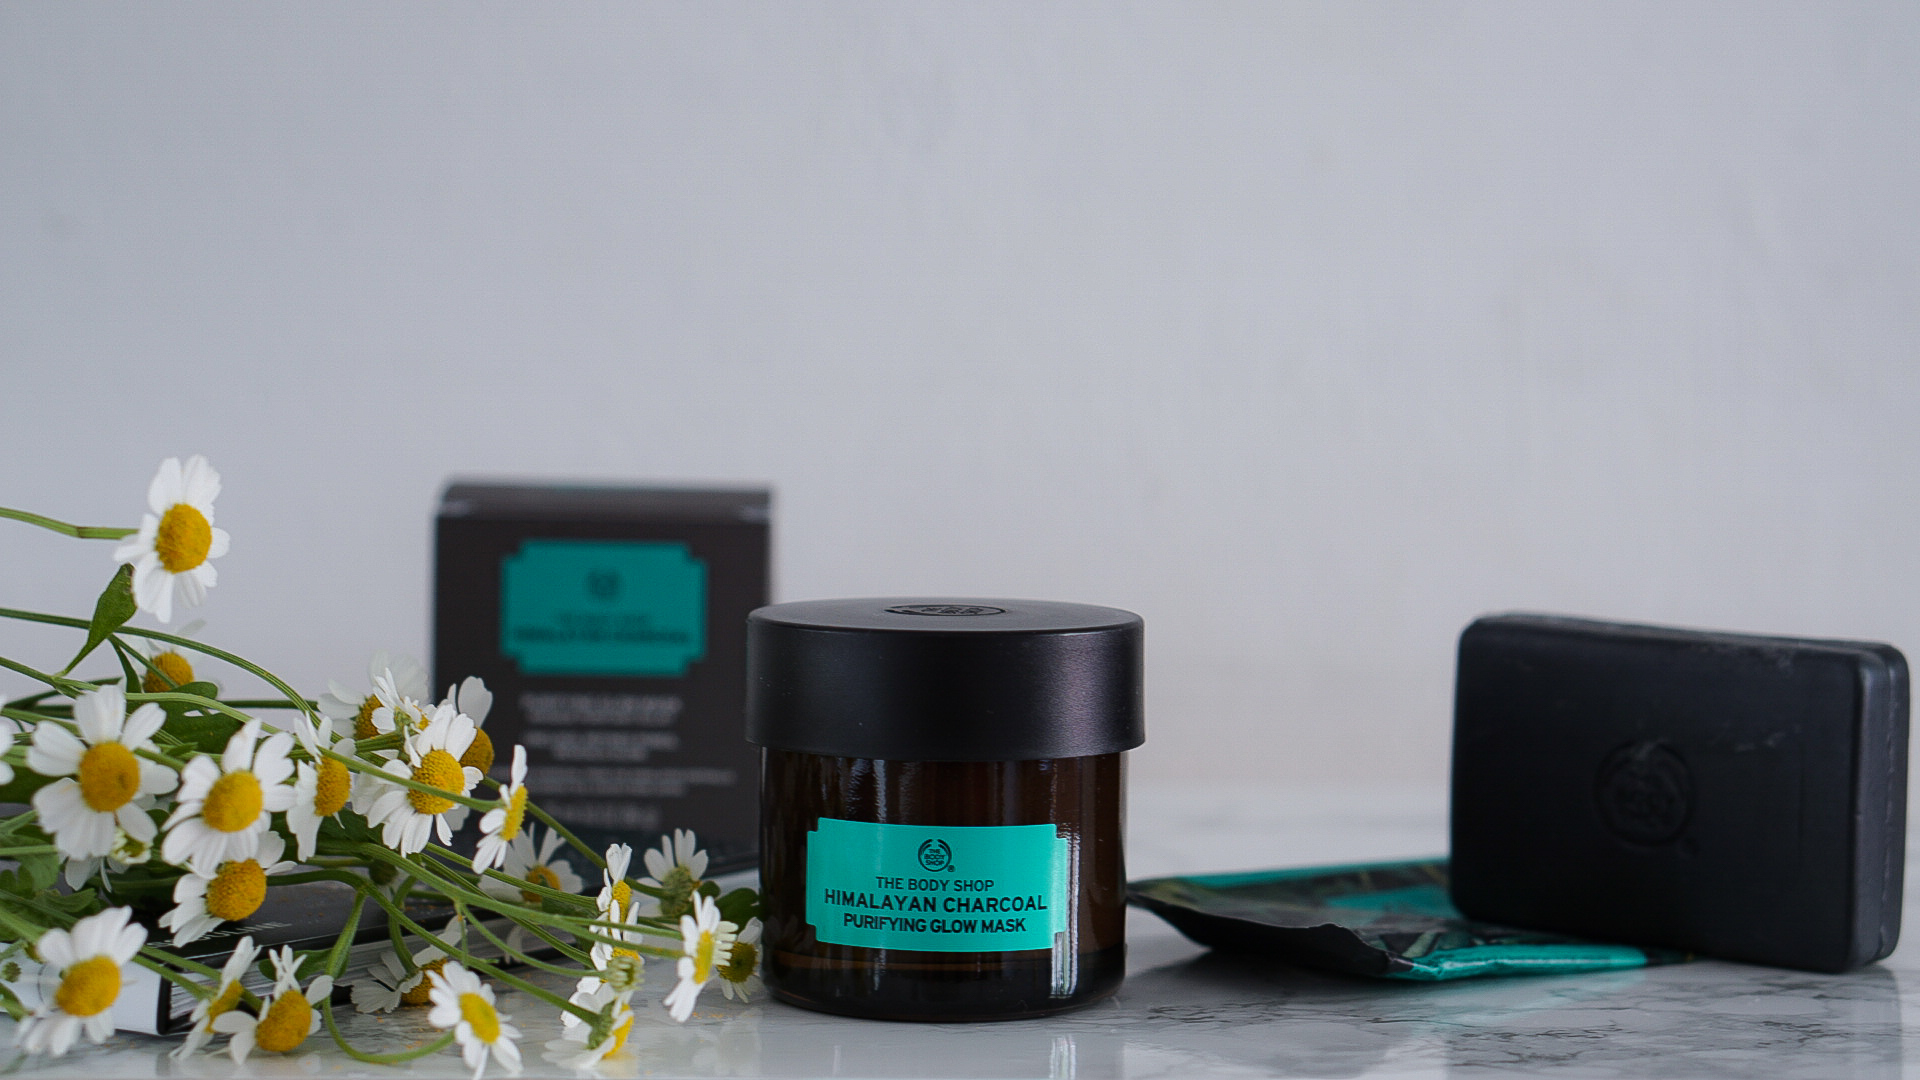 HIMALAYAN CHARCOAL FROM THE BODY SHOP